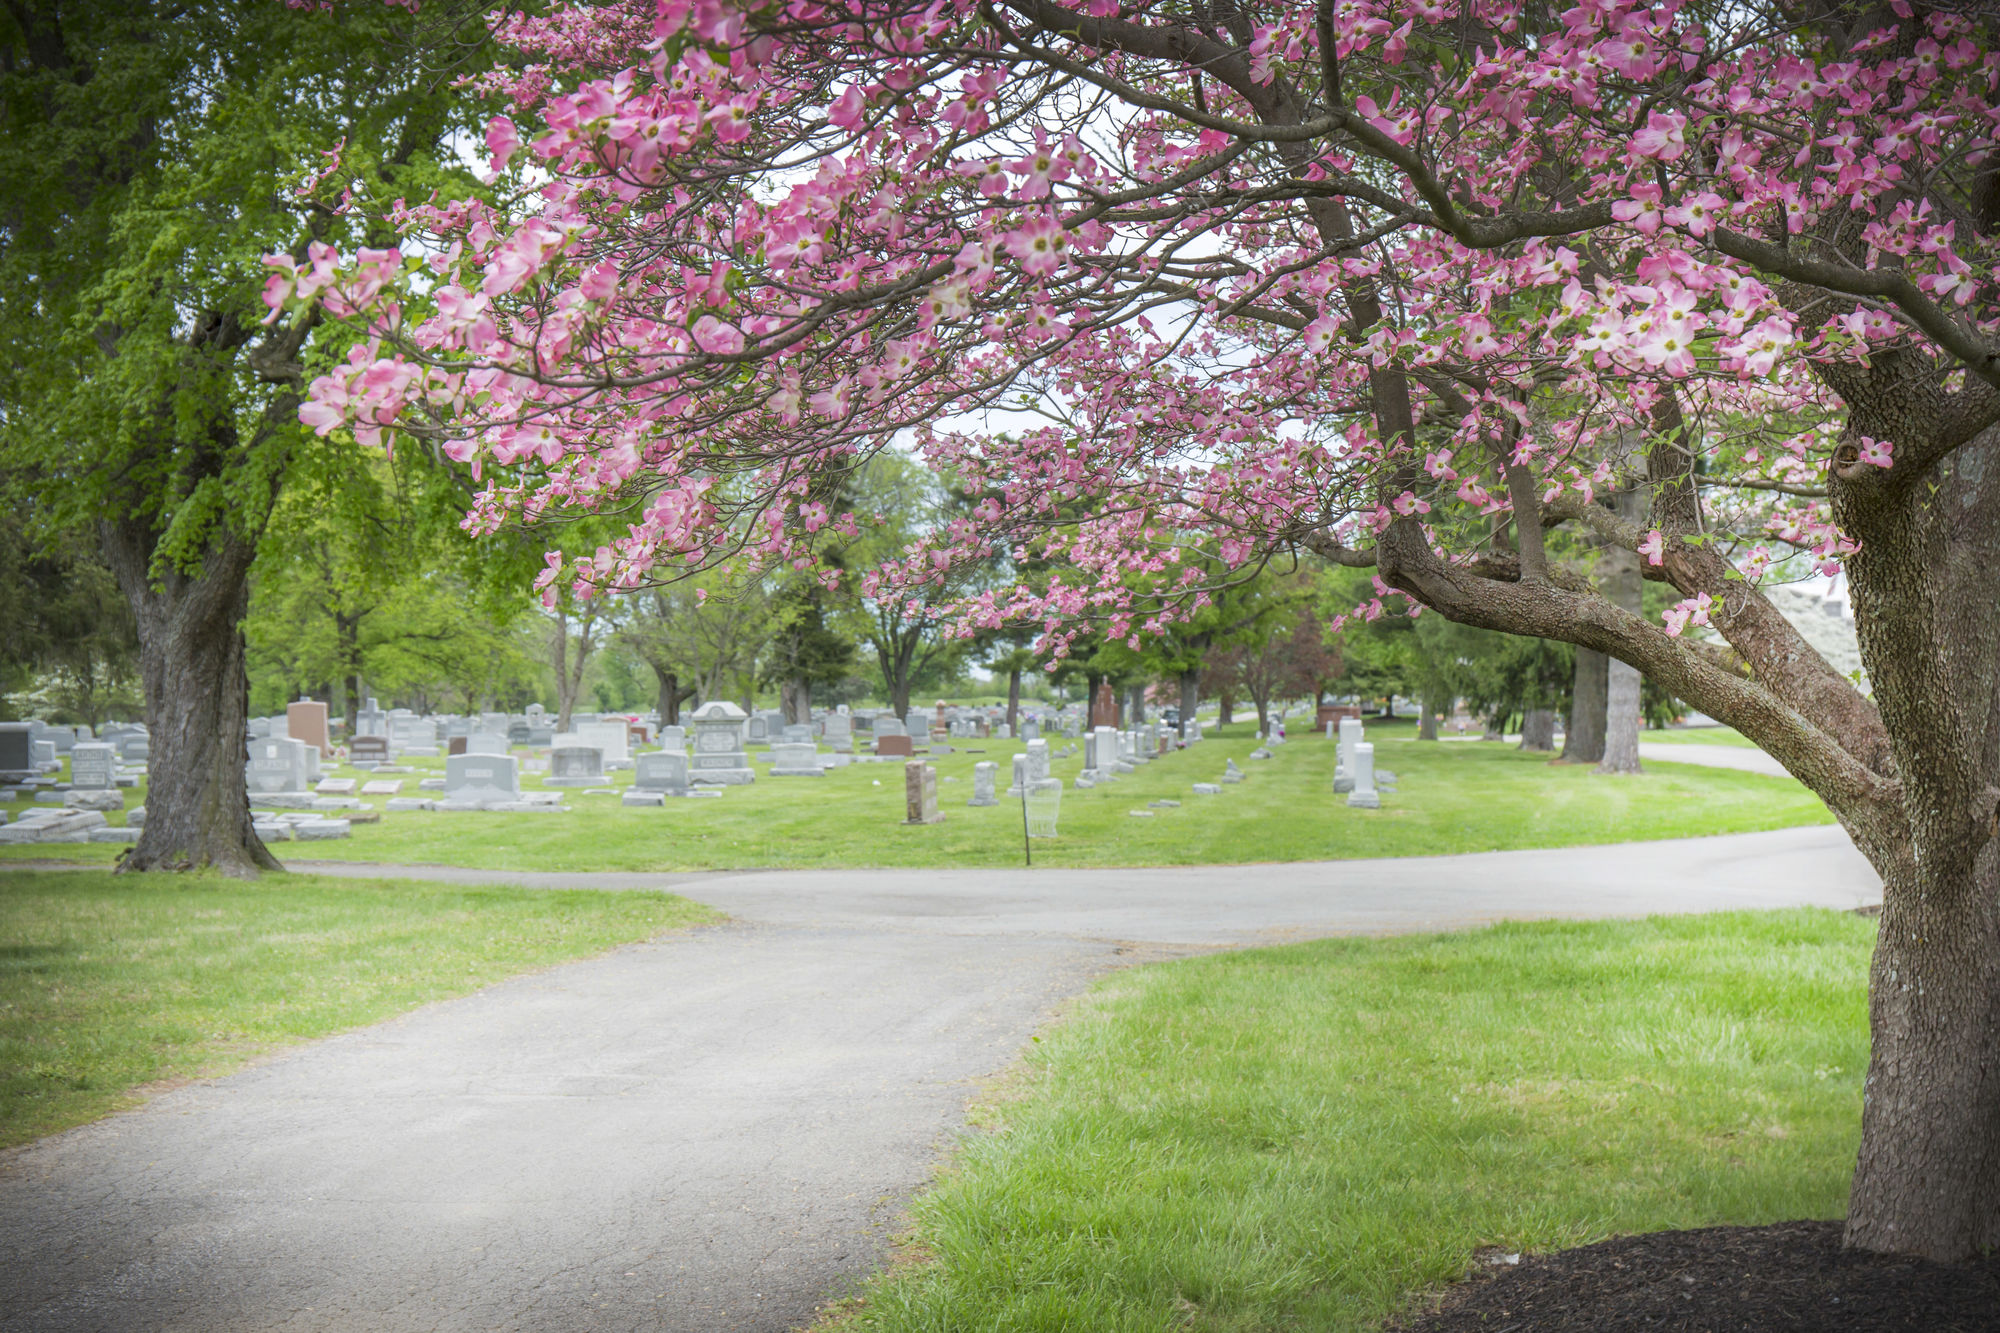 Cemetery grounds at Evergreen Cemetery